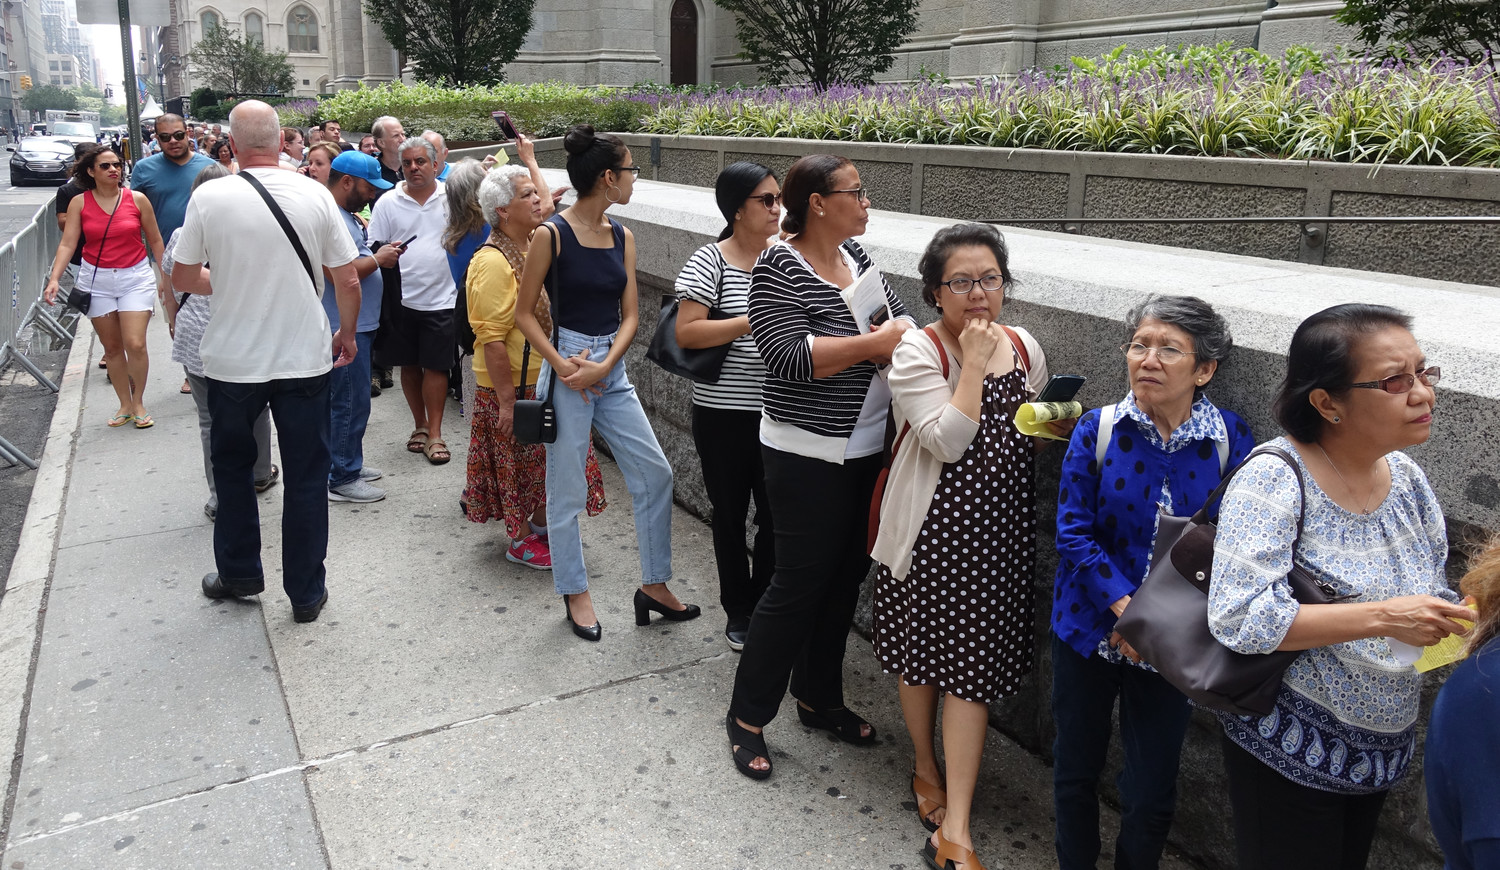 Devotees of St. Padre Pio wait to file into St. Patrick's Cathedral from 51st Street Sept. 17 to venerate relics of the Italian-born saint on display in the Lady Chapel. The line extended around the corner to Madison Avenue, in front of the cathedral's Parish House.